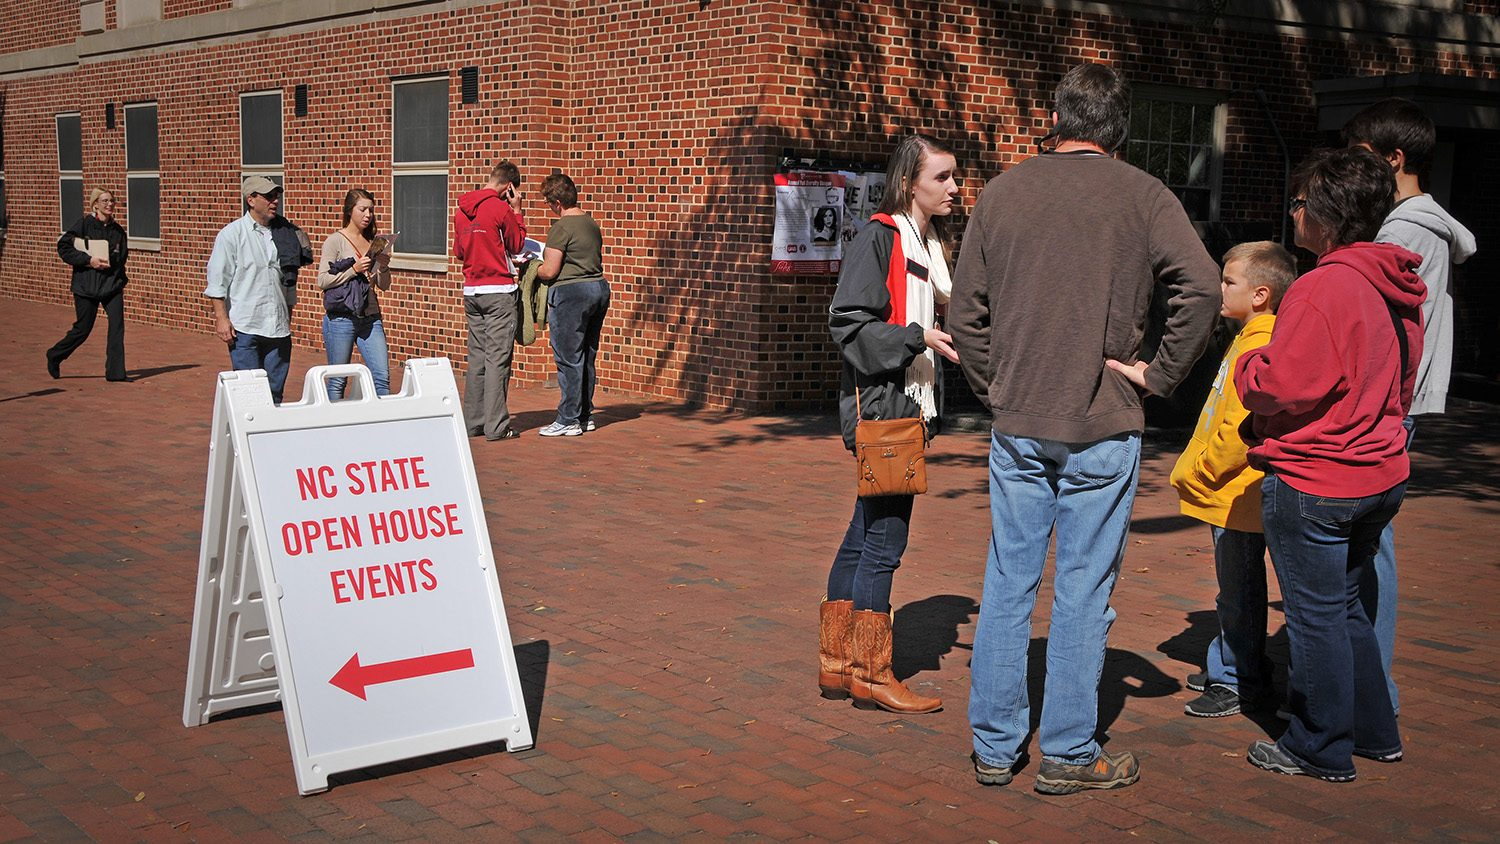 NC State Open House